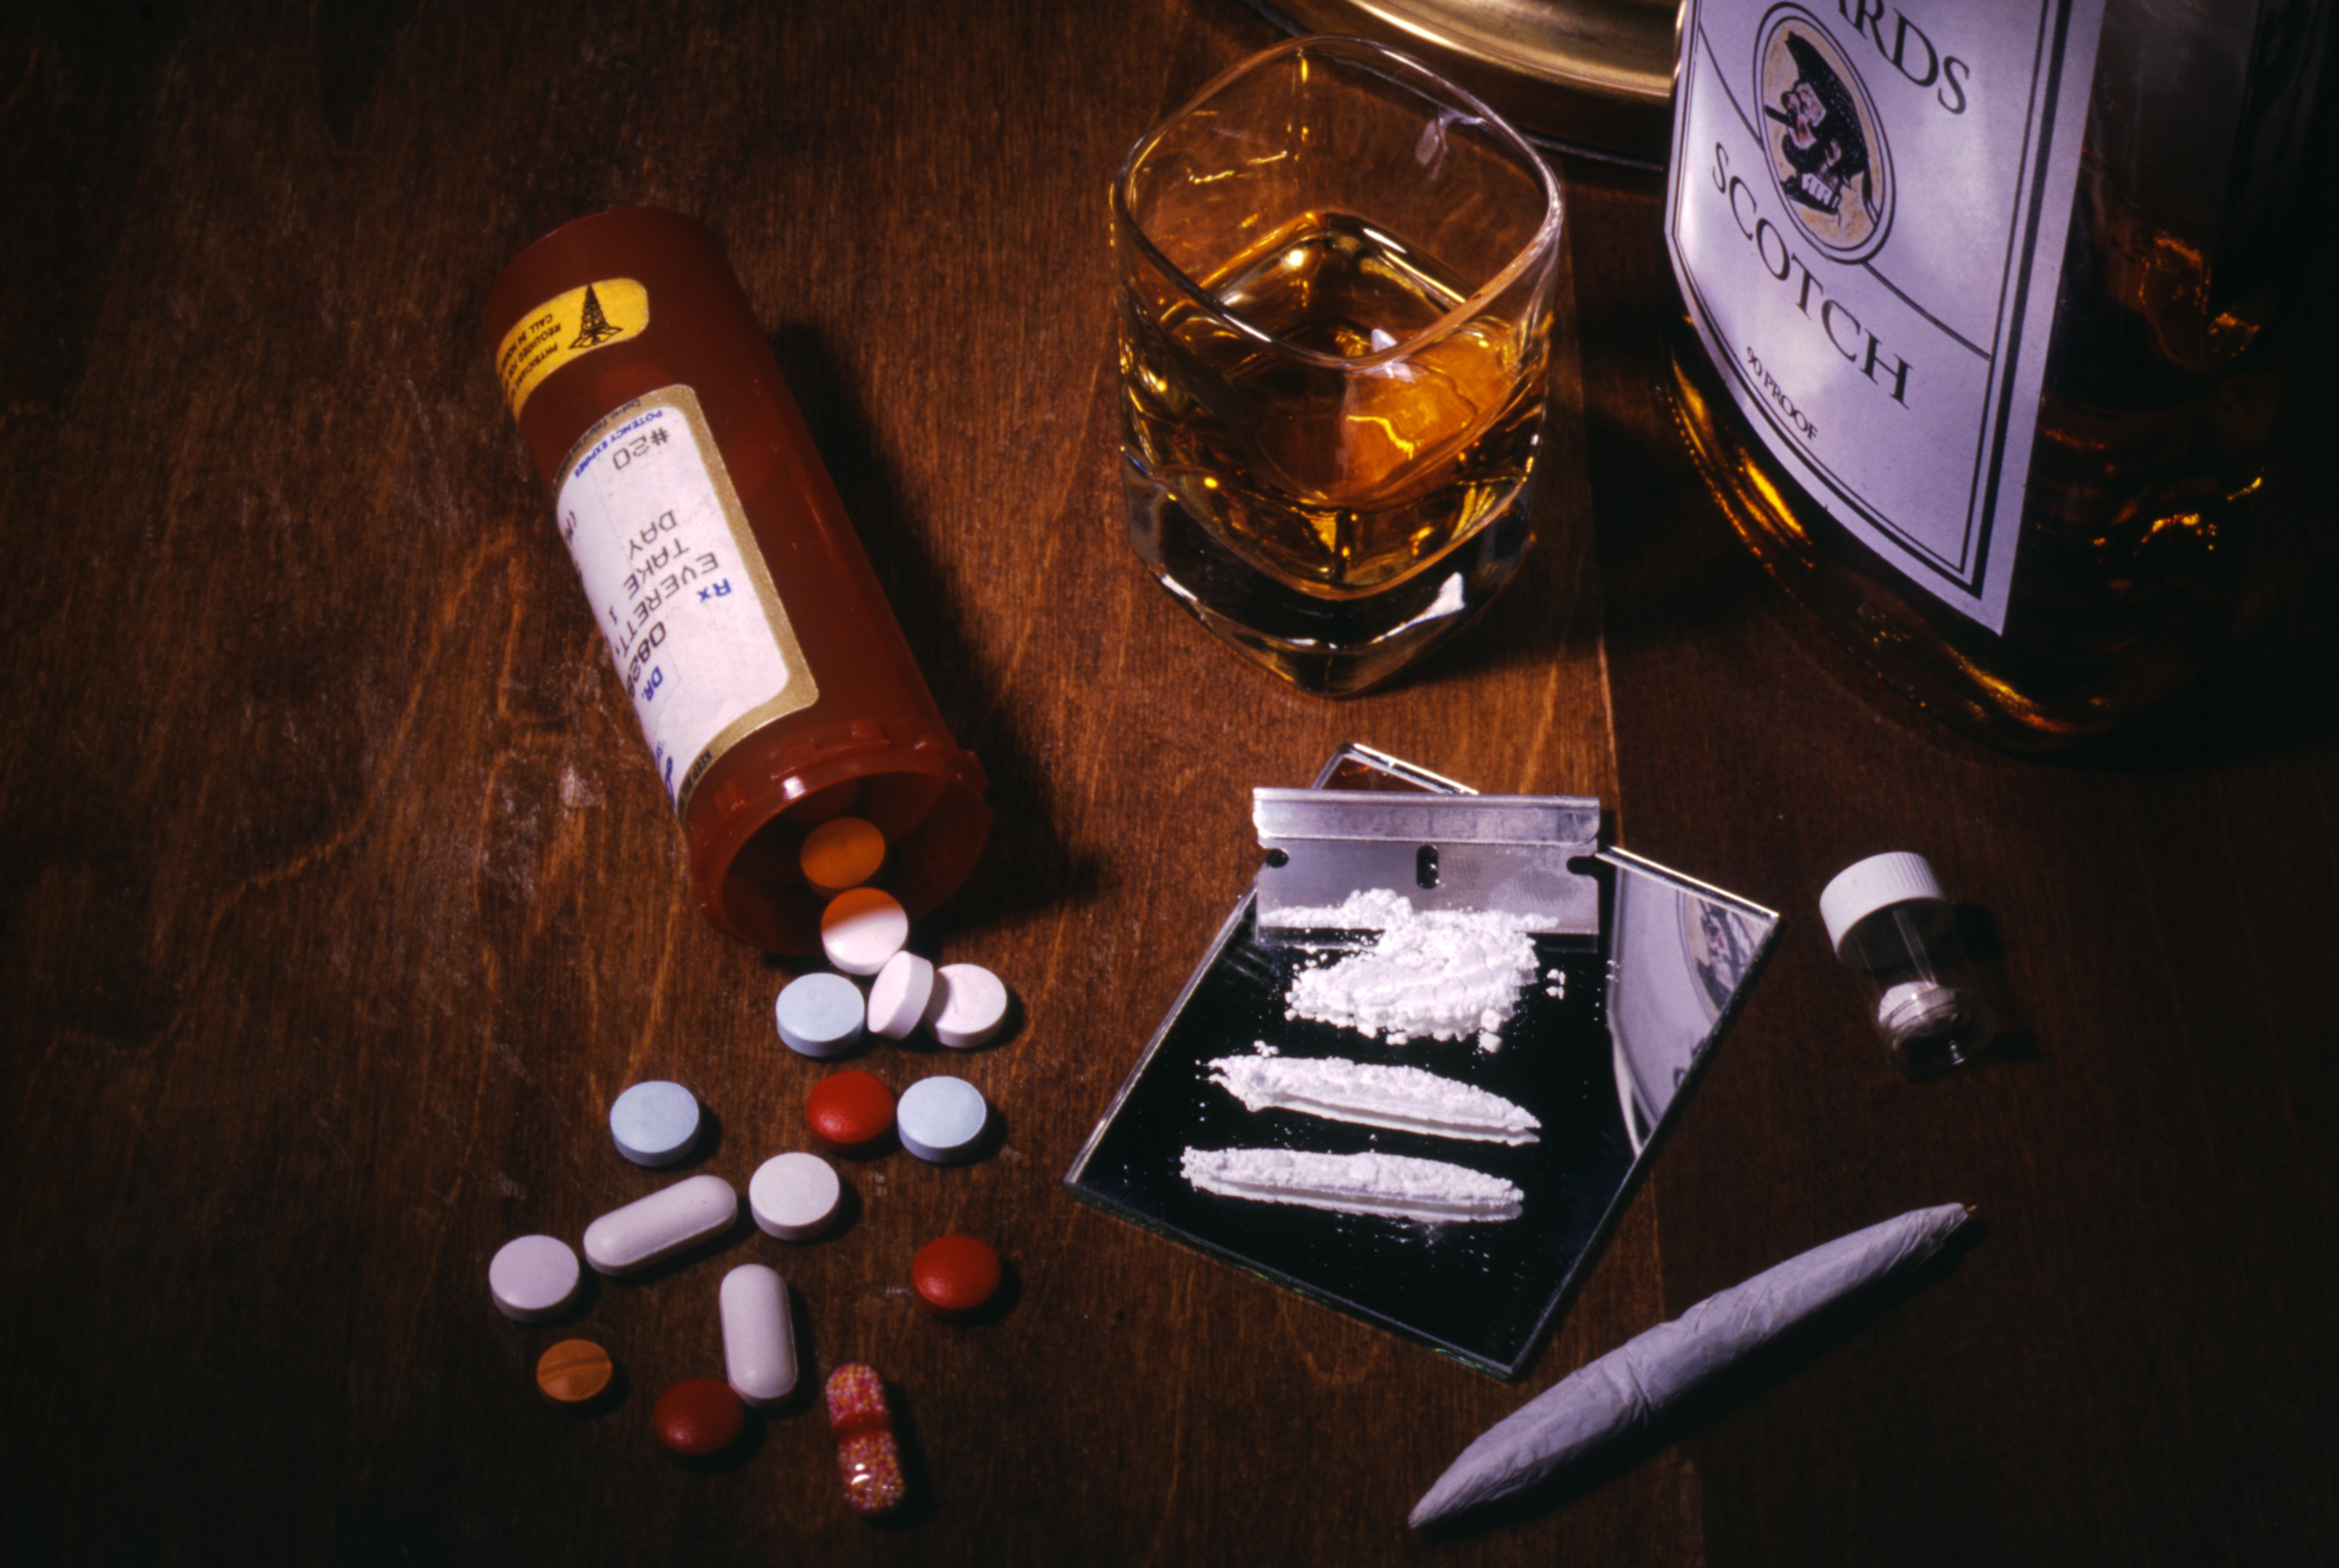 essay alcohol drug abuse Free essay: alcohol and drug abuse alcohol and drug abuse is one of biggest problems in united states today it is not only a personal problem that.